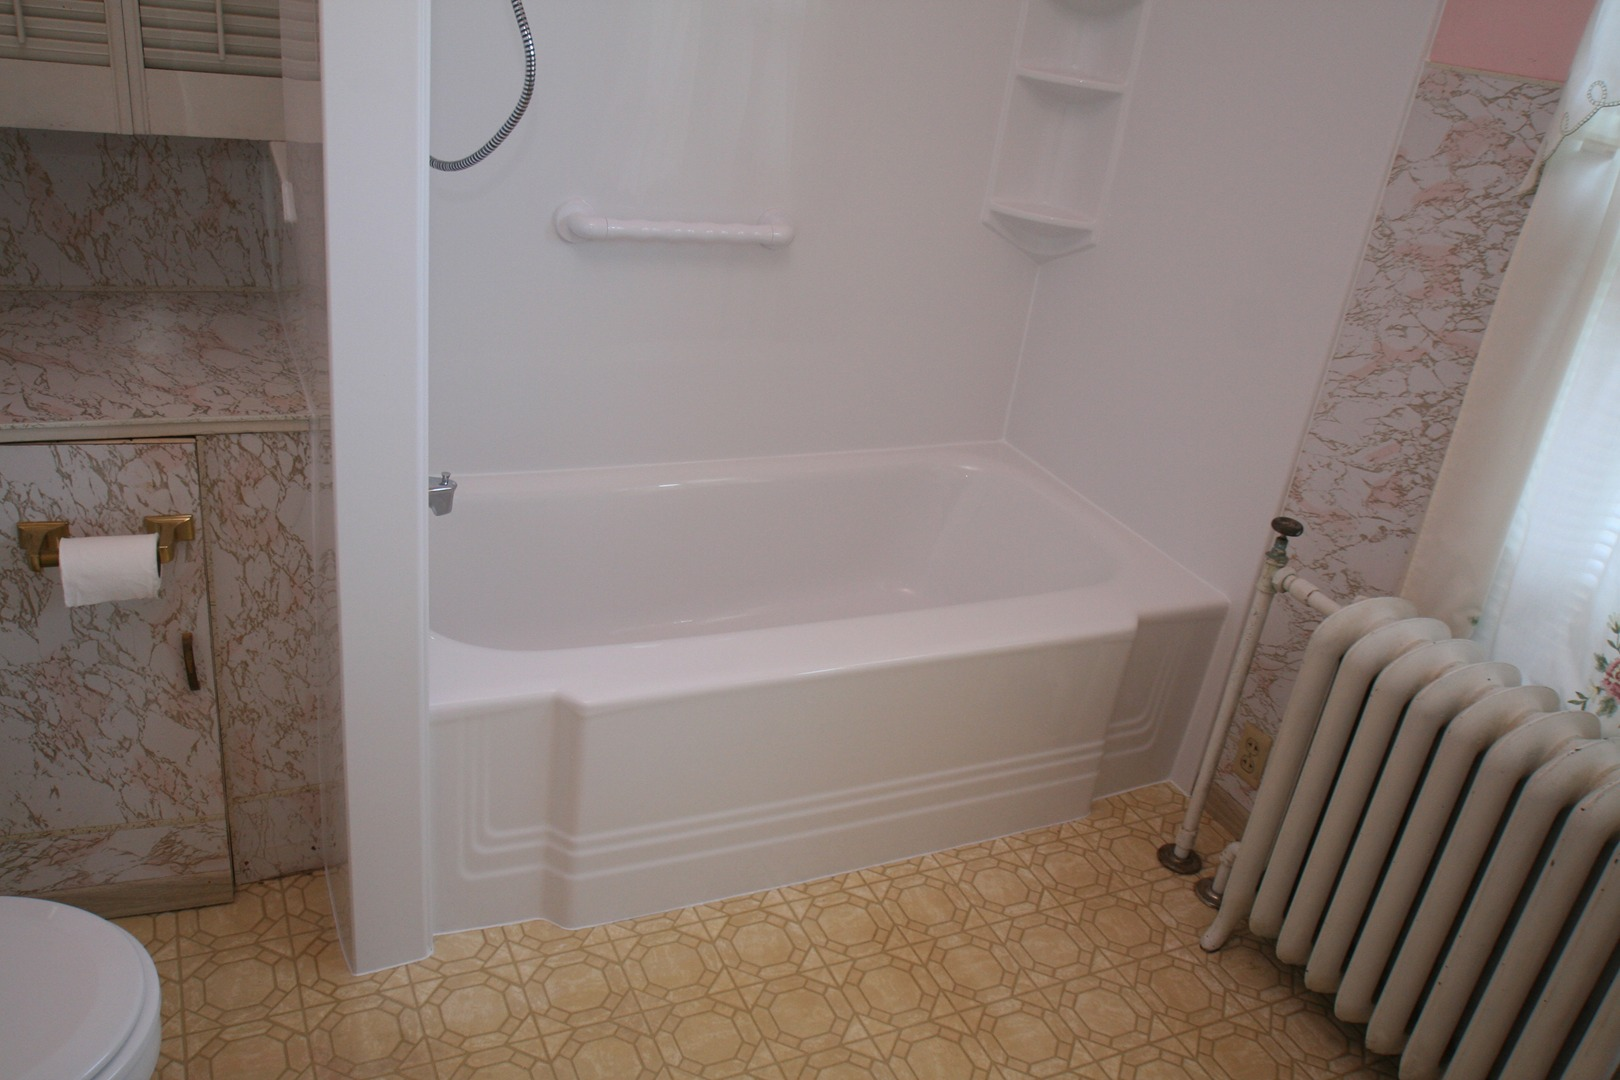 cool bathtub insert ideas bathtub for bathroom ideas